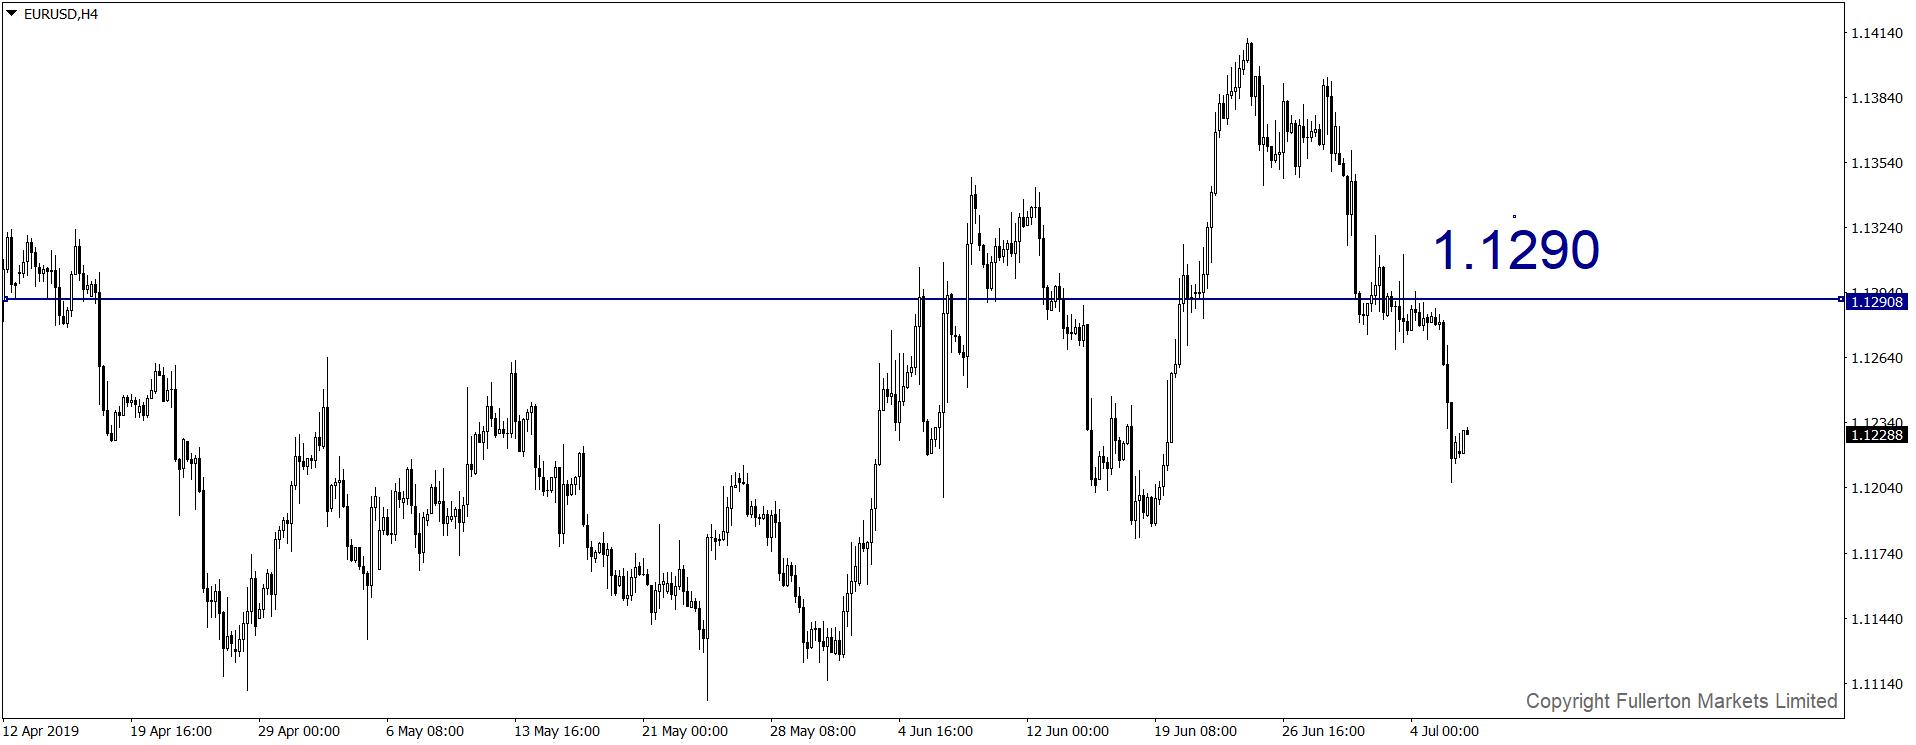 eurusd-h4-fullerton-markets-limited.png